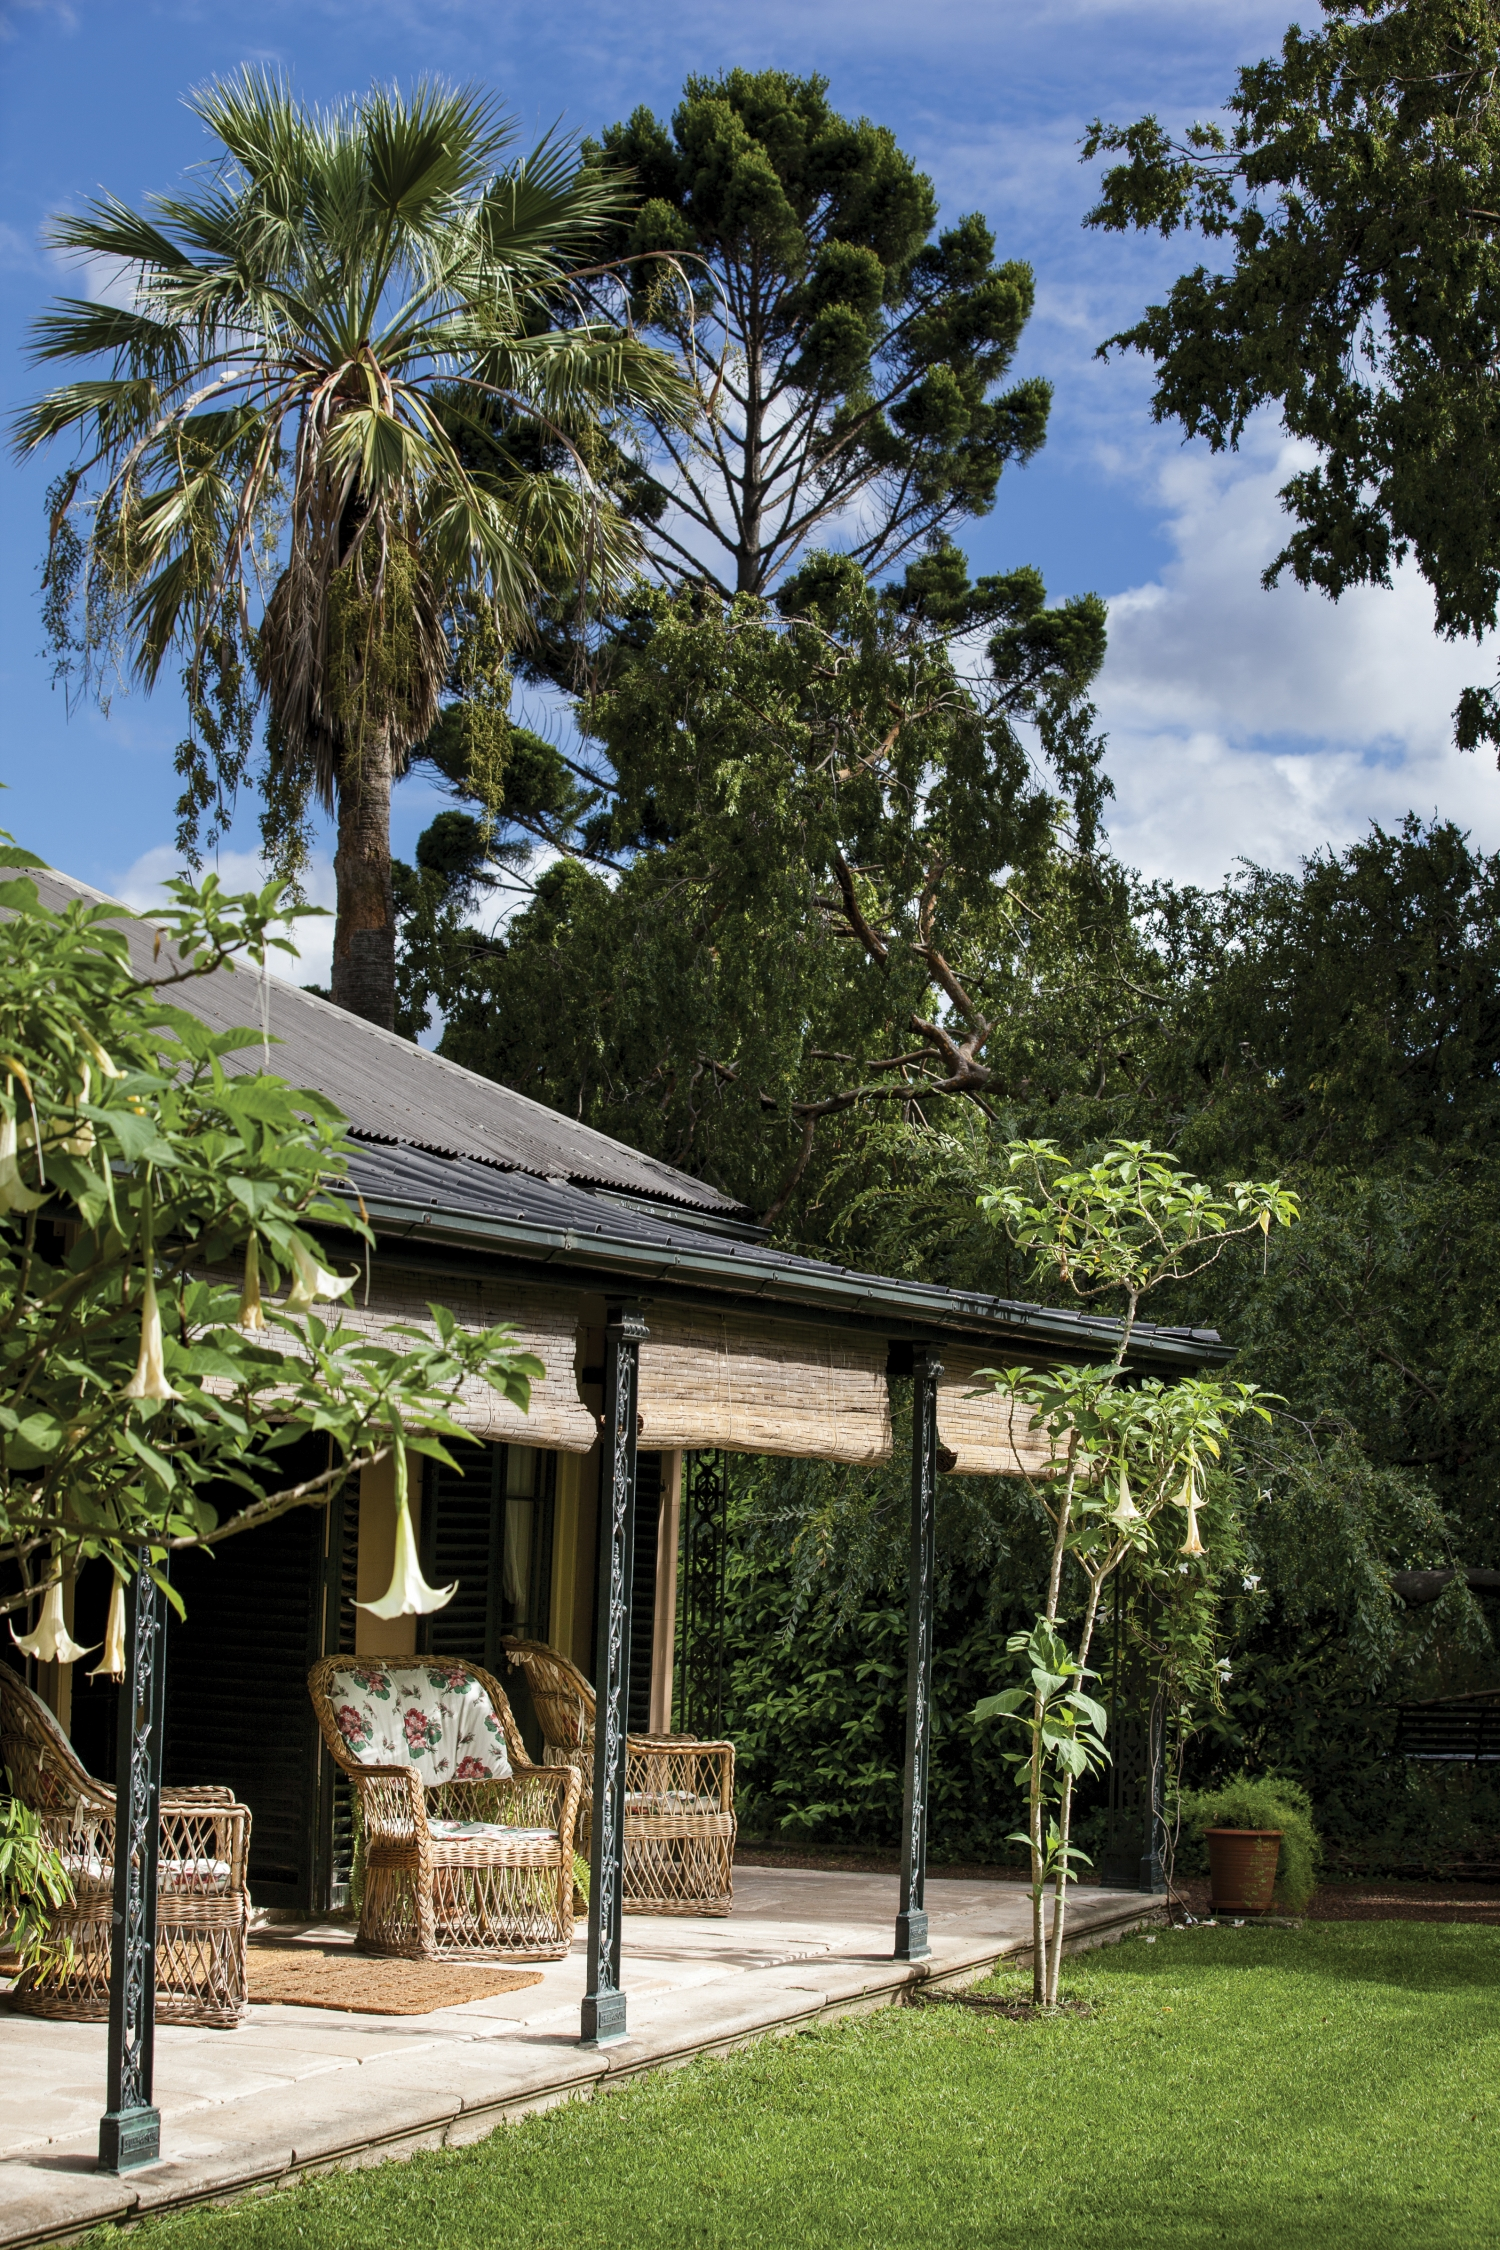 Portrait view of part of verandah with palm and other trees behind.